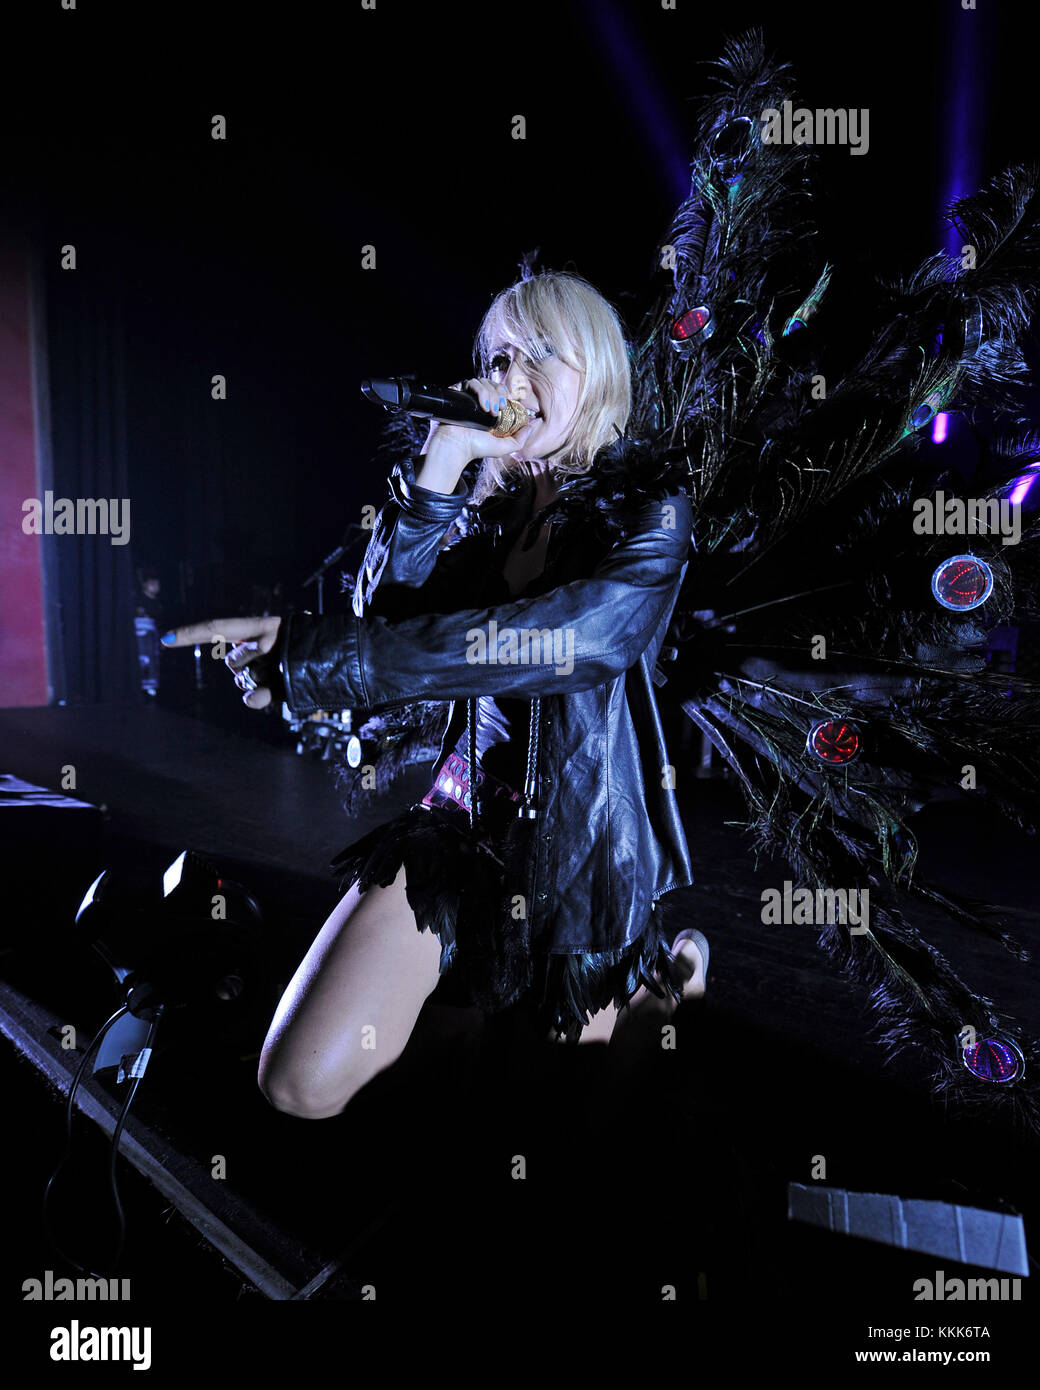 MIAMI BEACH, FL - NOVEMBER 02: Emily Haines of Metric performs at The Fillmore on November 2, 2015 in Miami Beach, - Stock Image